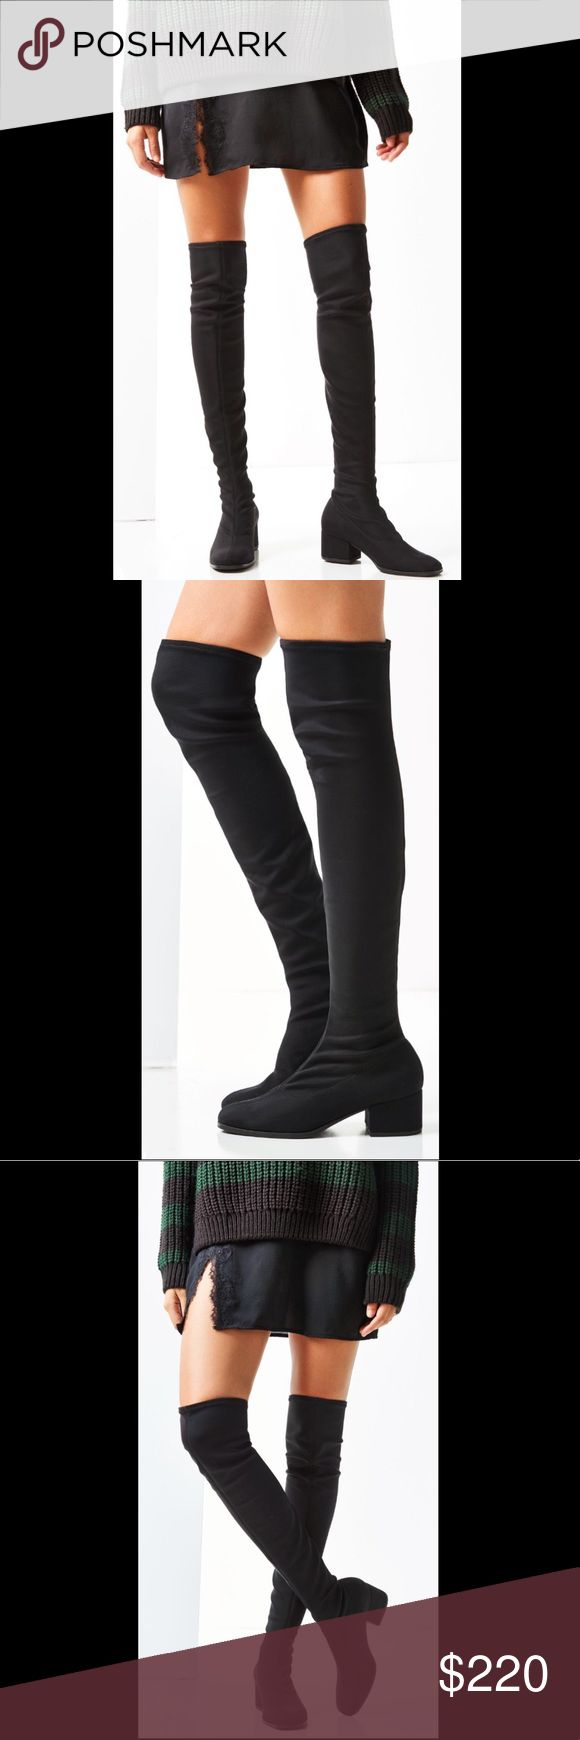 Vagabond Daisy Over-the-Knee Boot, Sz US 7 / EU 37 VAGABOND BOOTS! Never worn; new with box. Size currently sold out at Urban Outfitters online. Please message if you'd like me to post actual item photos. Open to offers. ***Will only sell to and communicate with potential buyers within the Poshmark app / website*** Urban Outfitters Shoes Over the Knee Boots